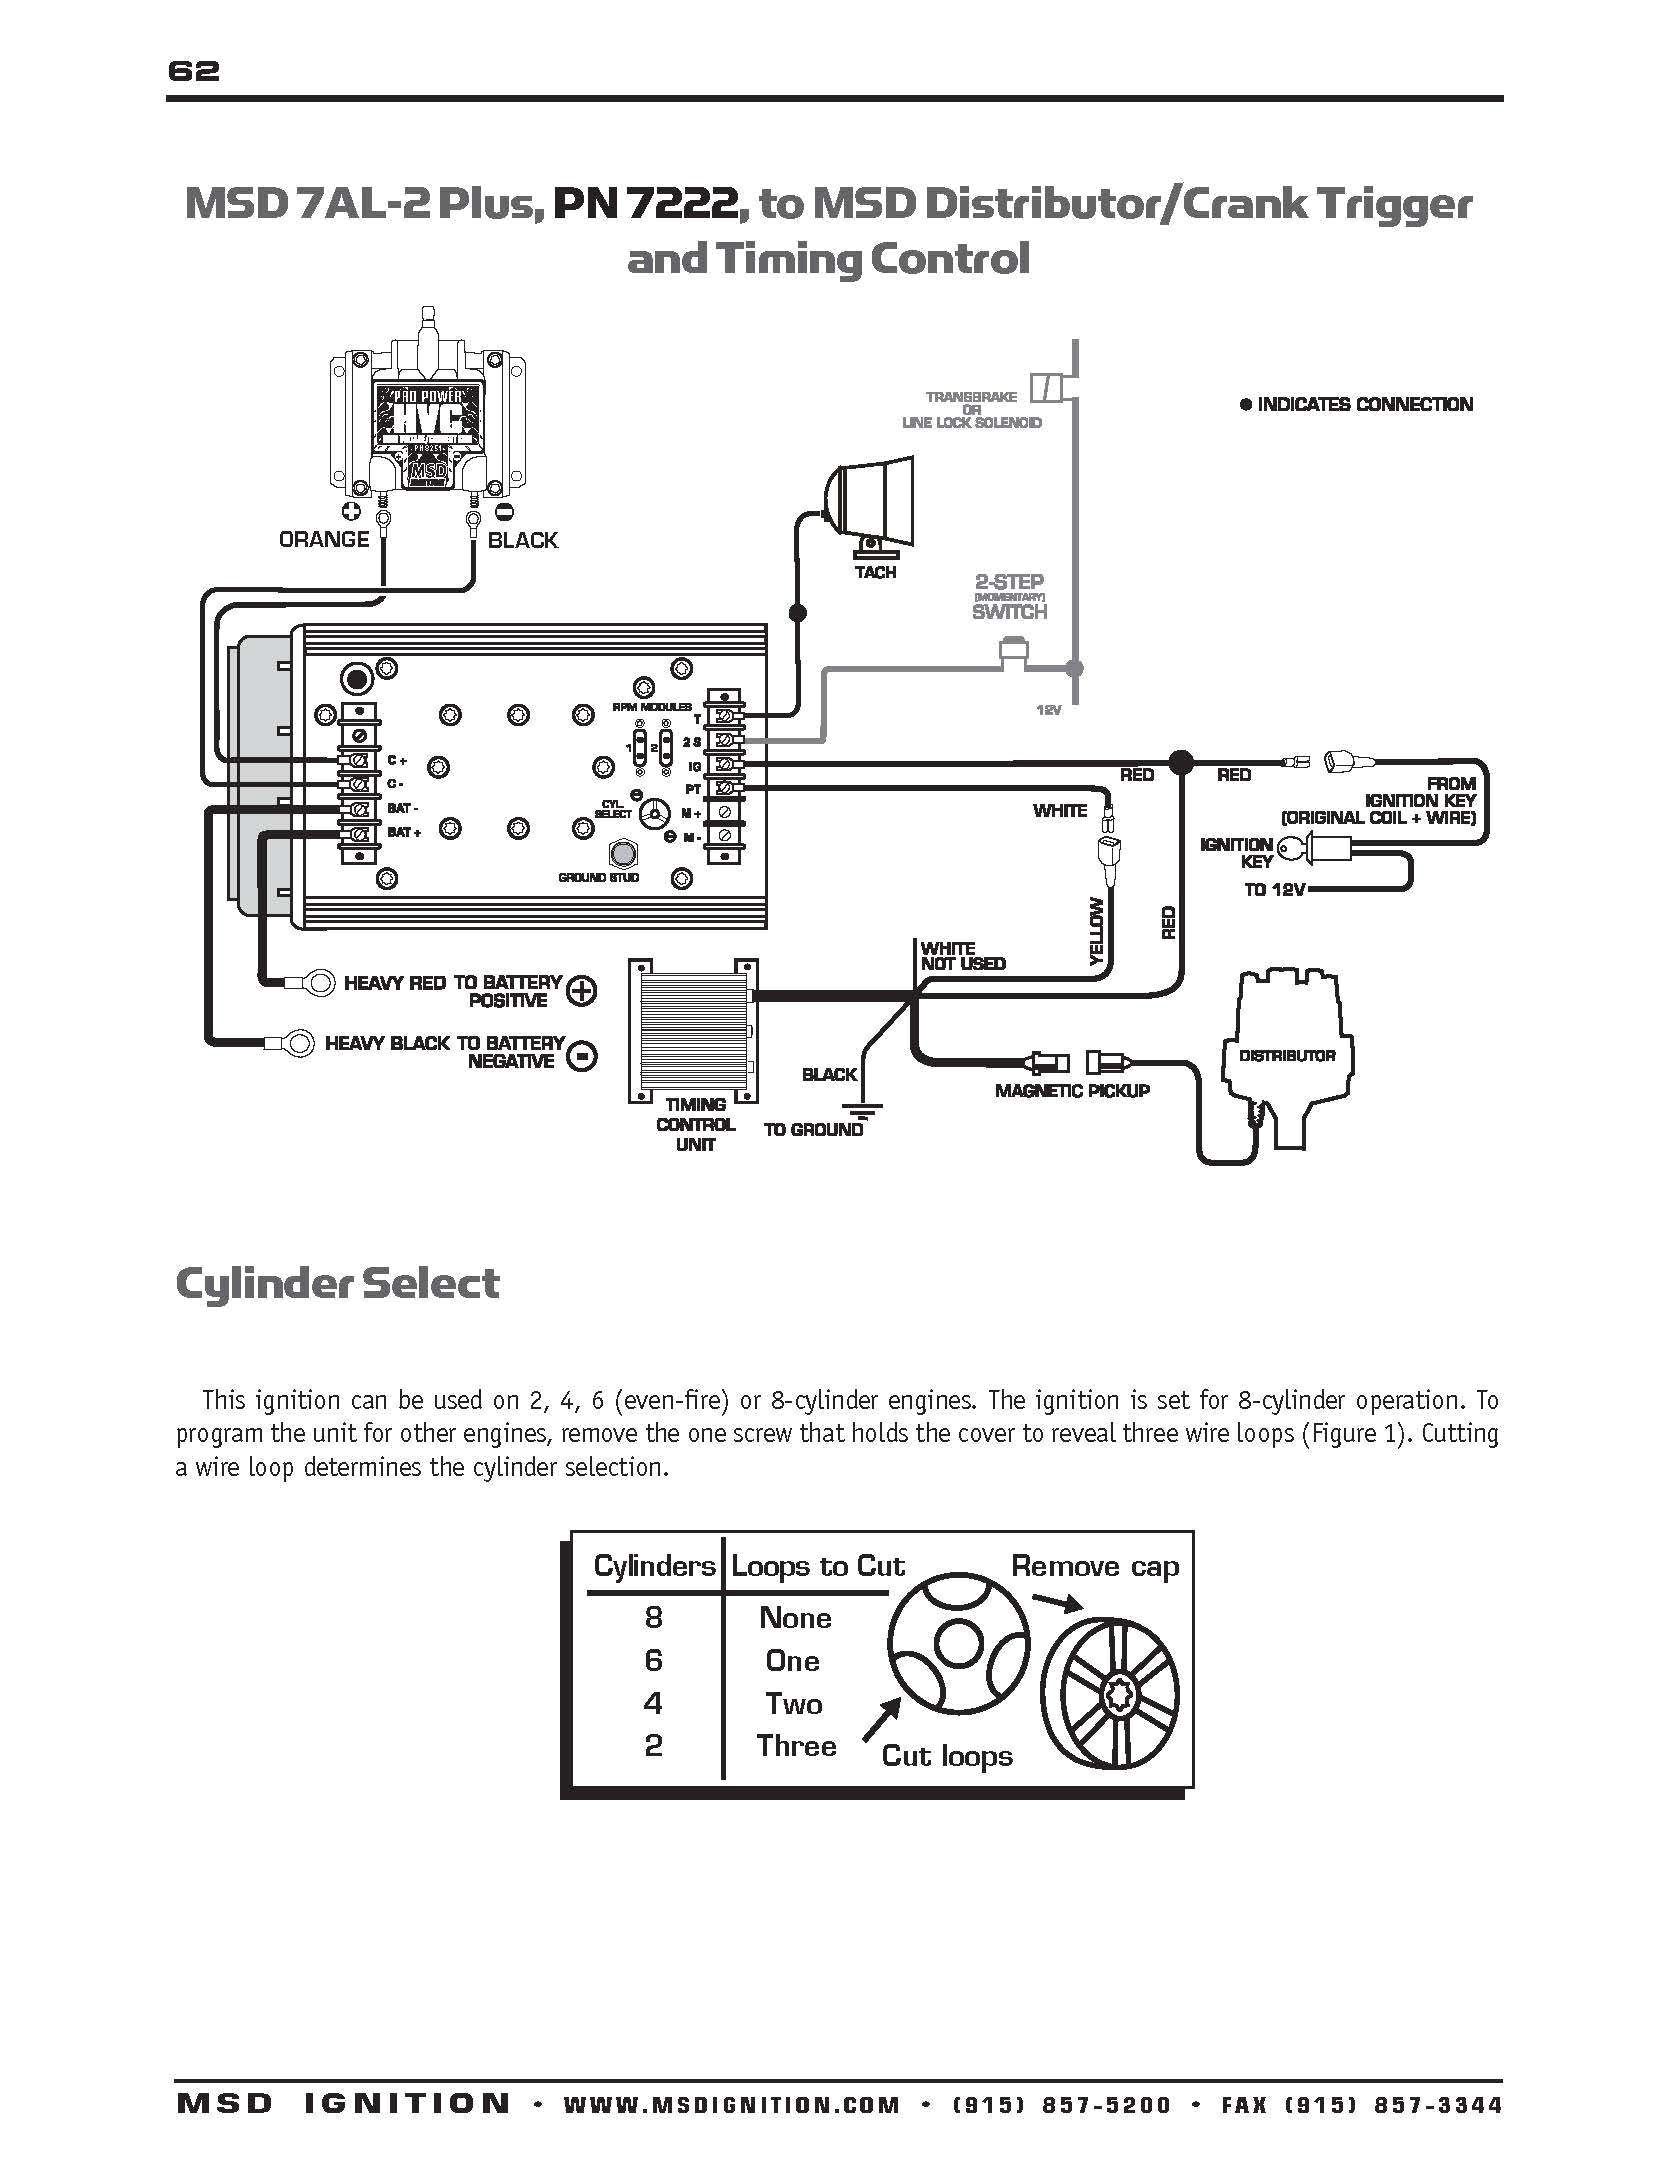 msd ignition wiring diagrams inside 6al diagram for cool 8950 4 jpg